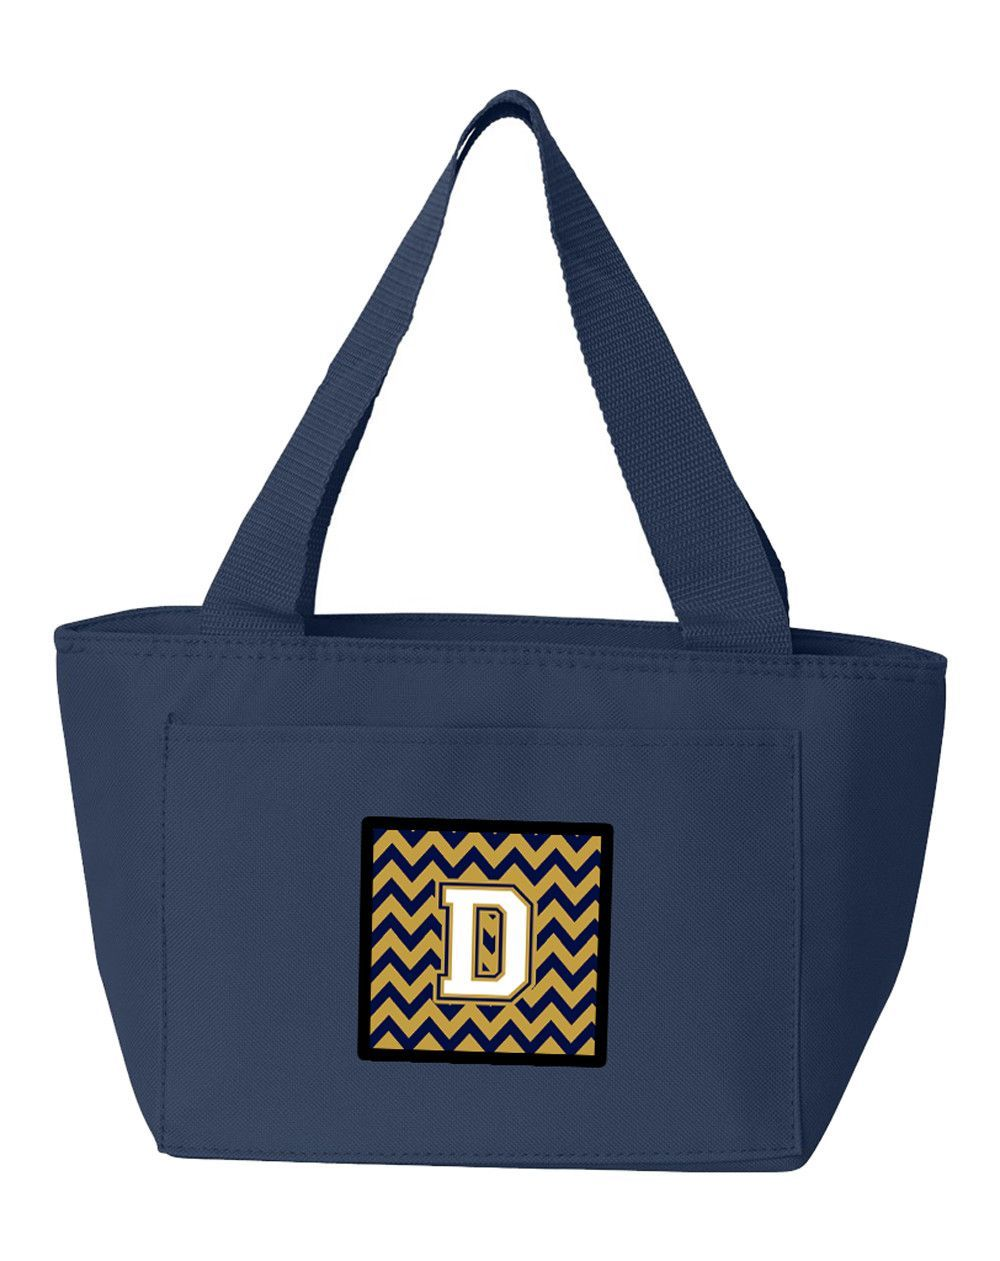 Letter D Chevron Navy Blue and Gold Lunch Bag CJ1057-DNA-8808